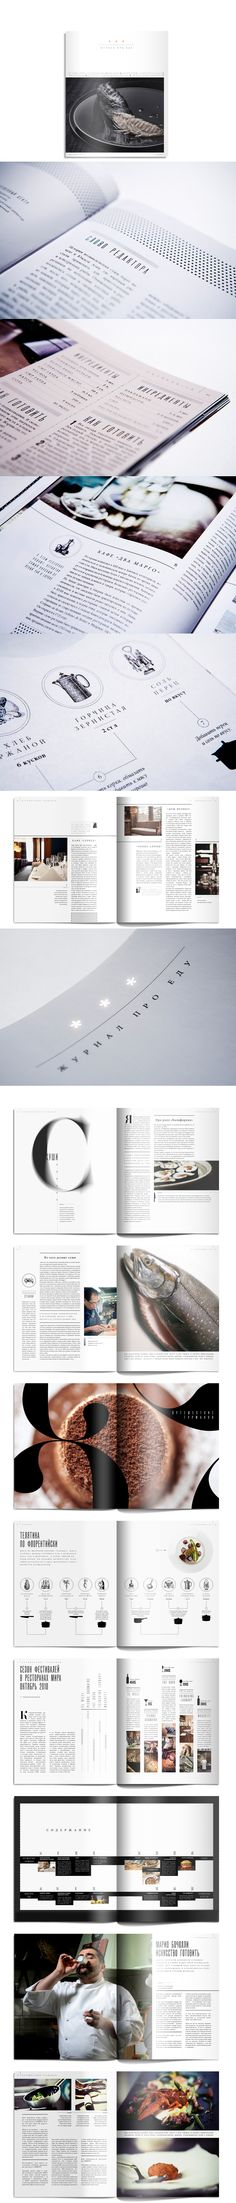 Food Magazine Editorial Design #print #catalog #catalogue #book #design #layout #dtp #printed